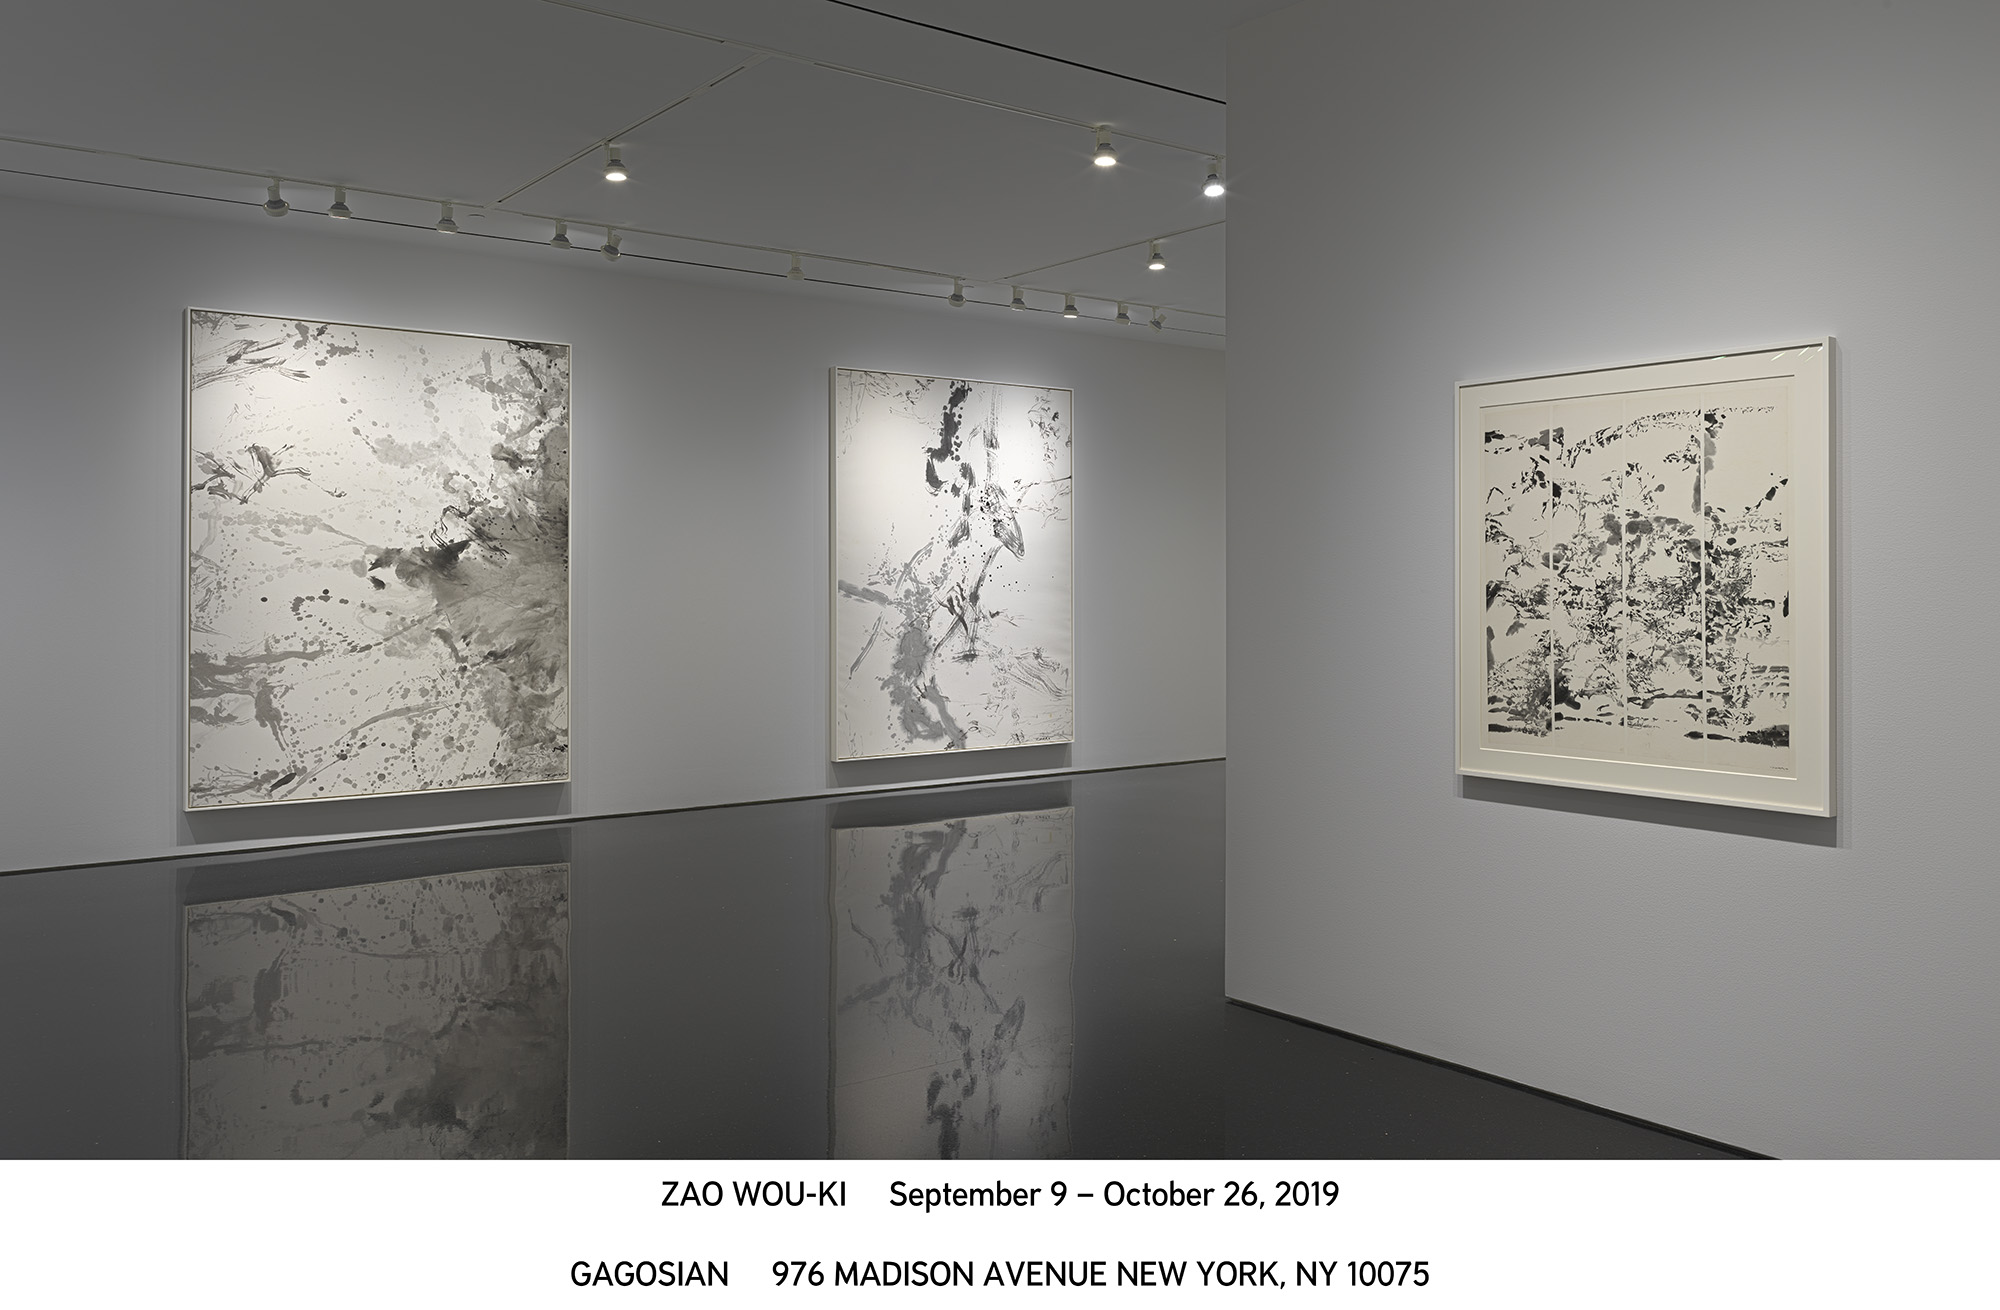 Exposition Zao Wou-Ki à la Gagosian Gallery de New York. Photo: Gagosian Gallery